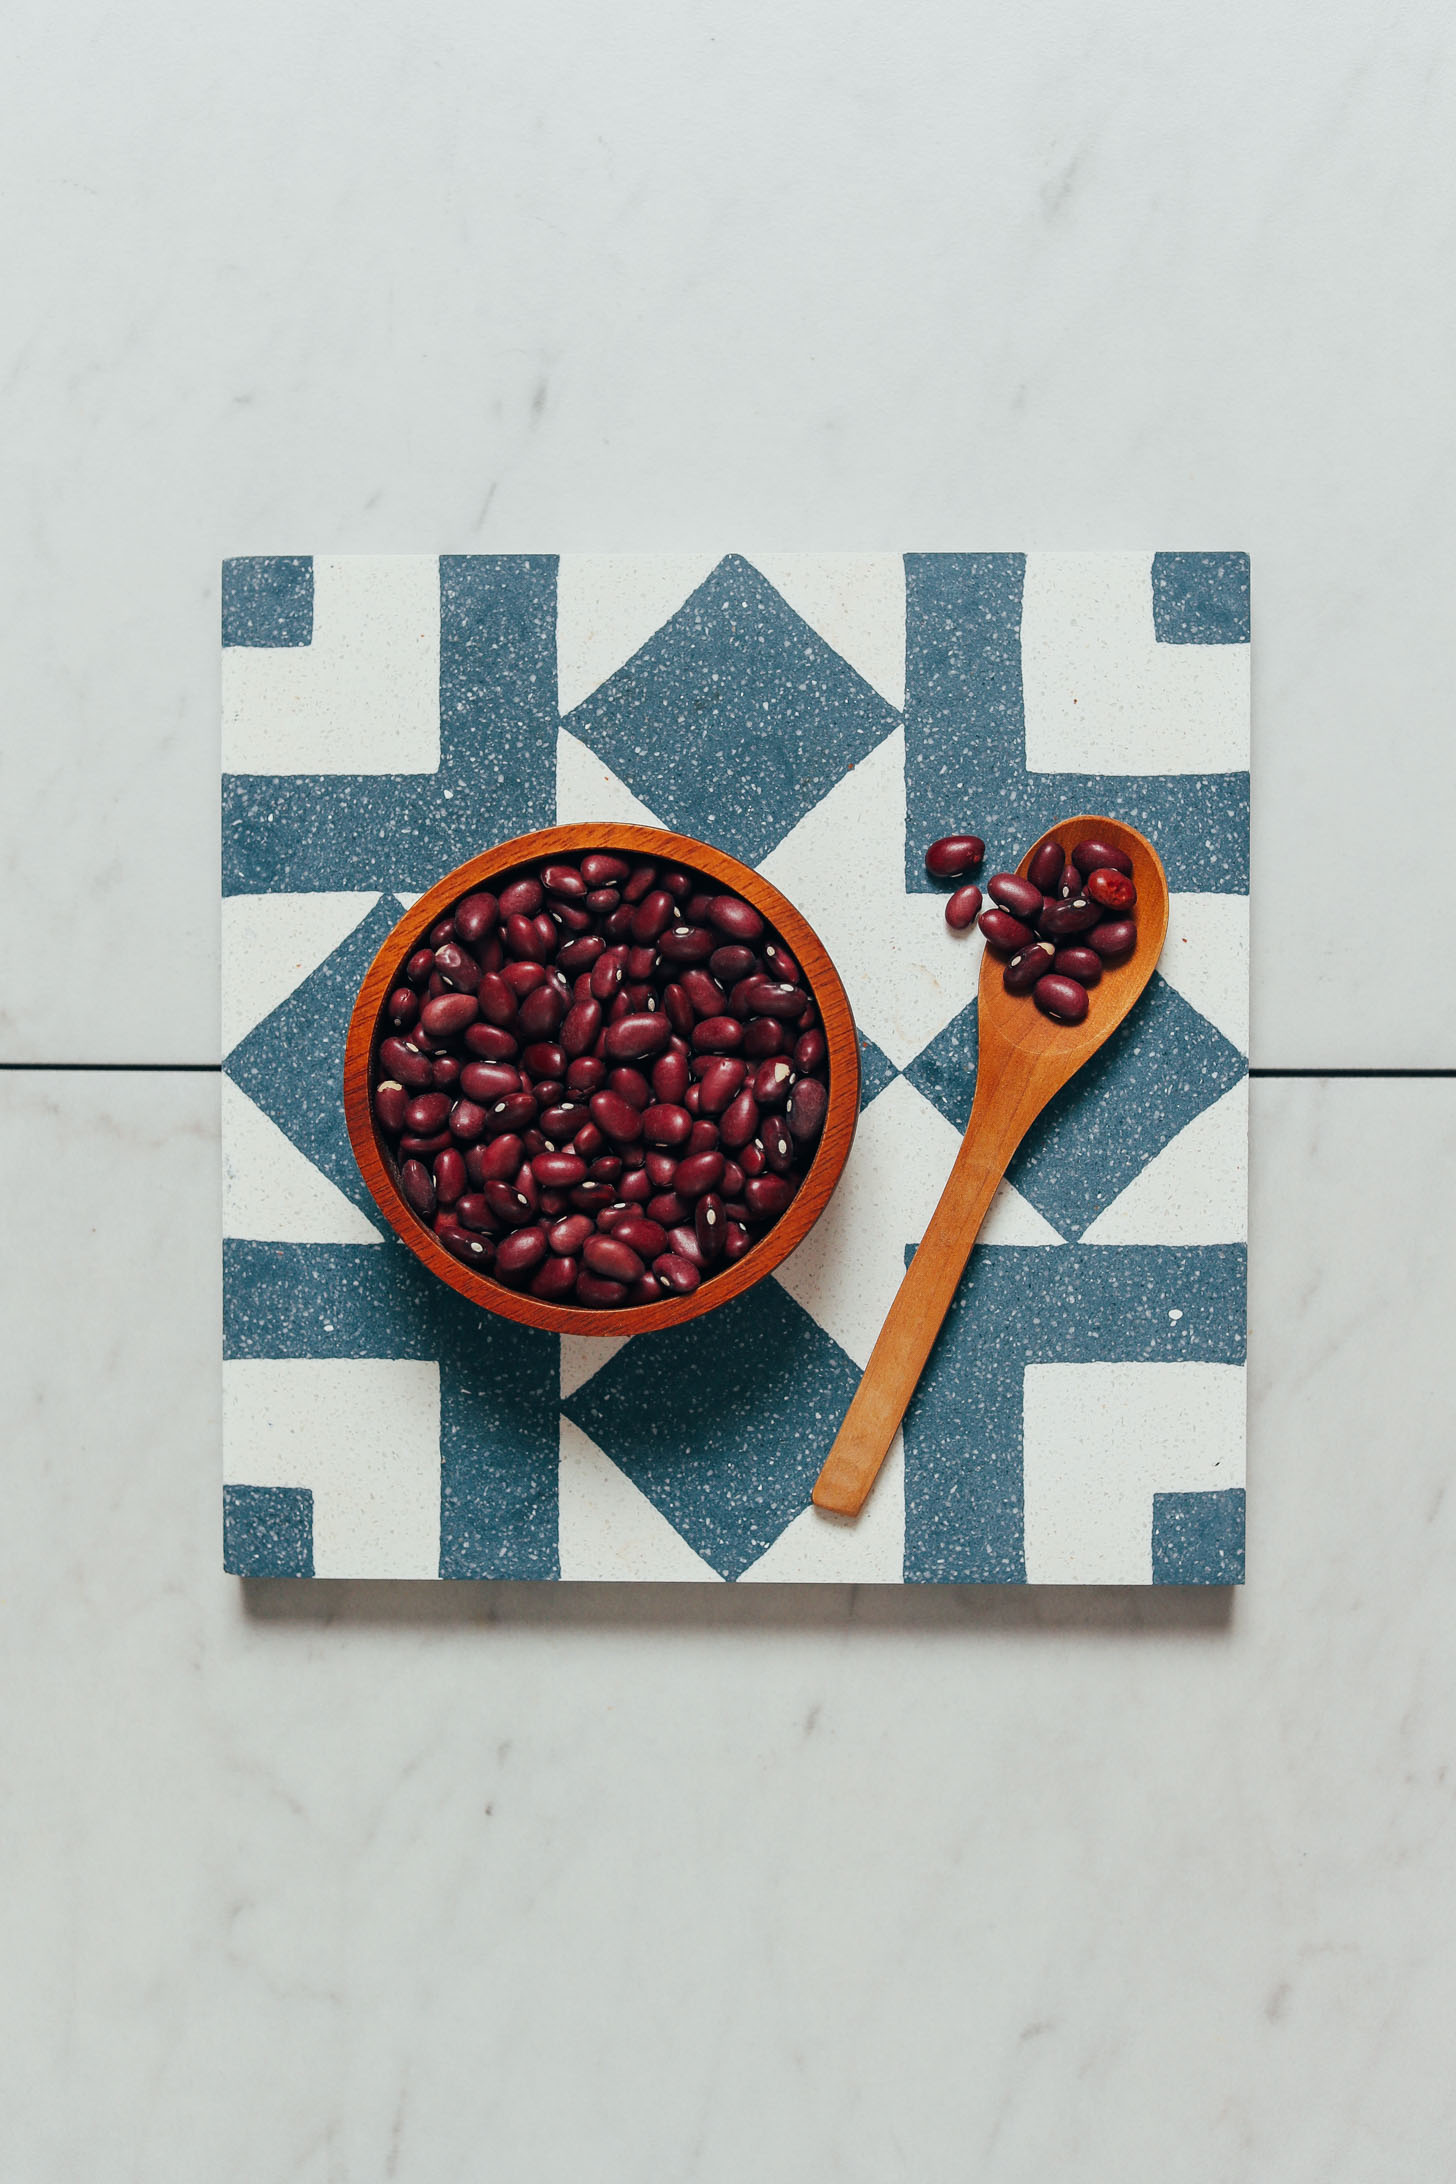 Spoon and bowl of Instant Pot red beans